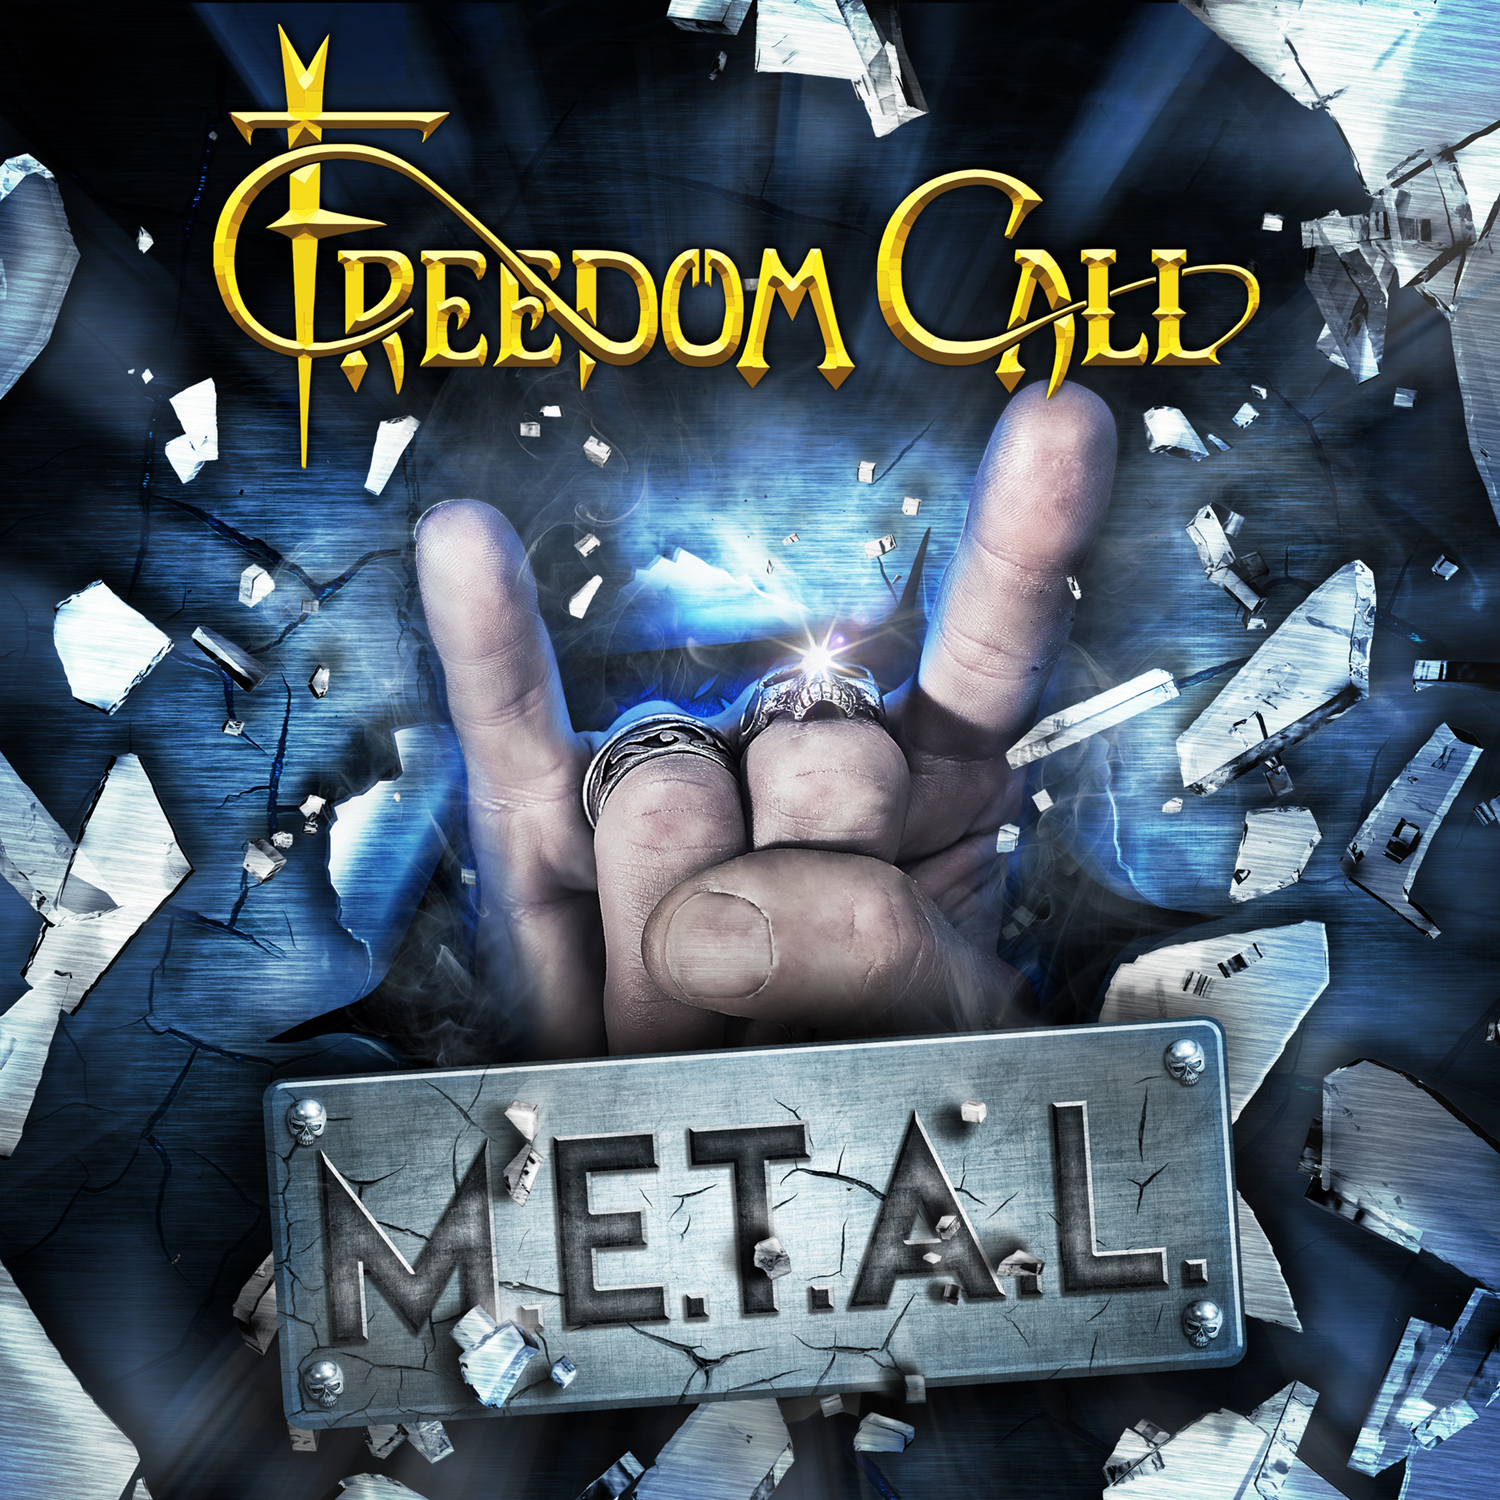 Freedom Call- M E T A L – The Median Man